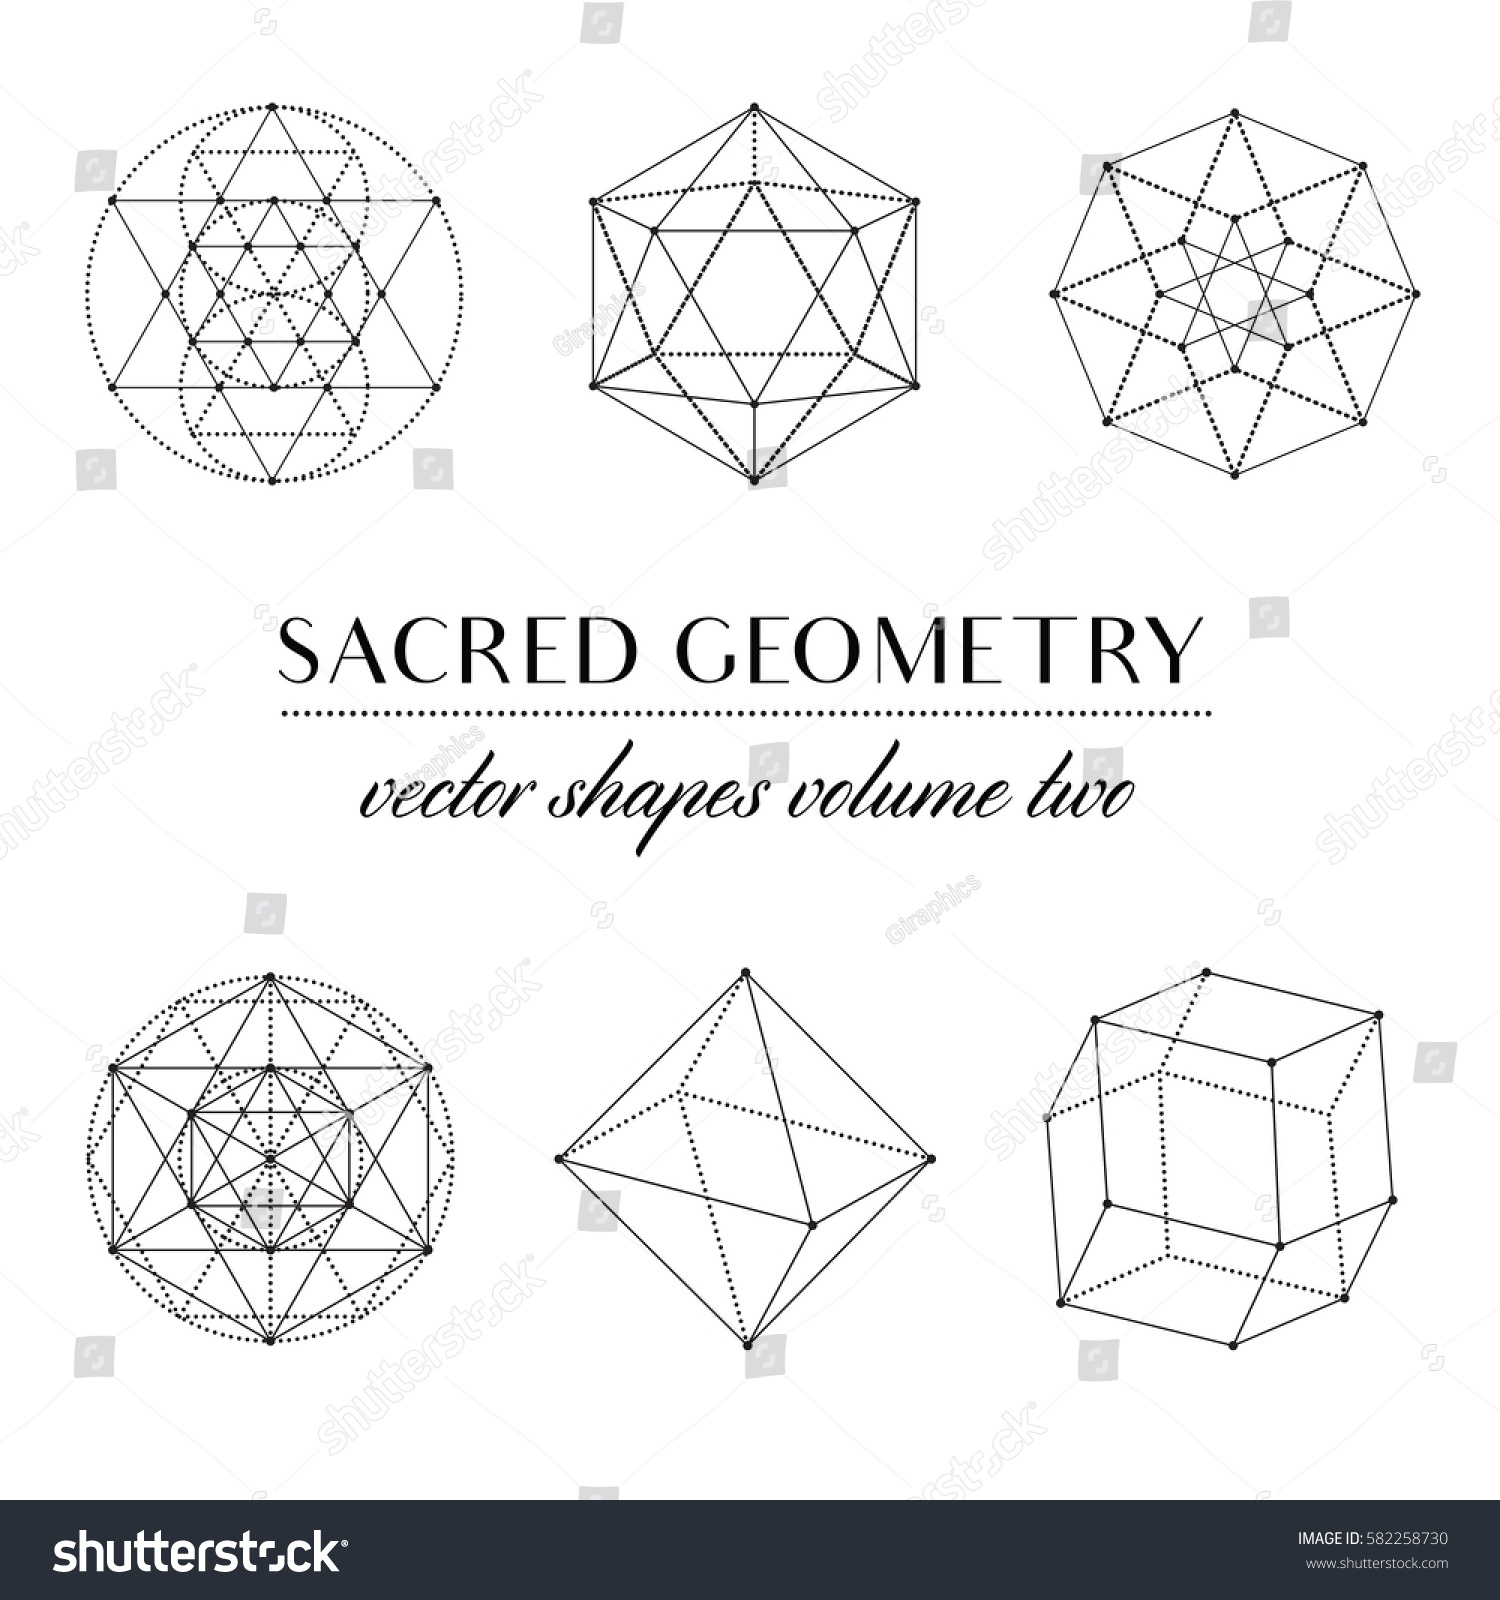 Captivating Sacred Geometry Volume Two   Set Of Sacred Geometry Art. Geometric Vector  Art